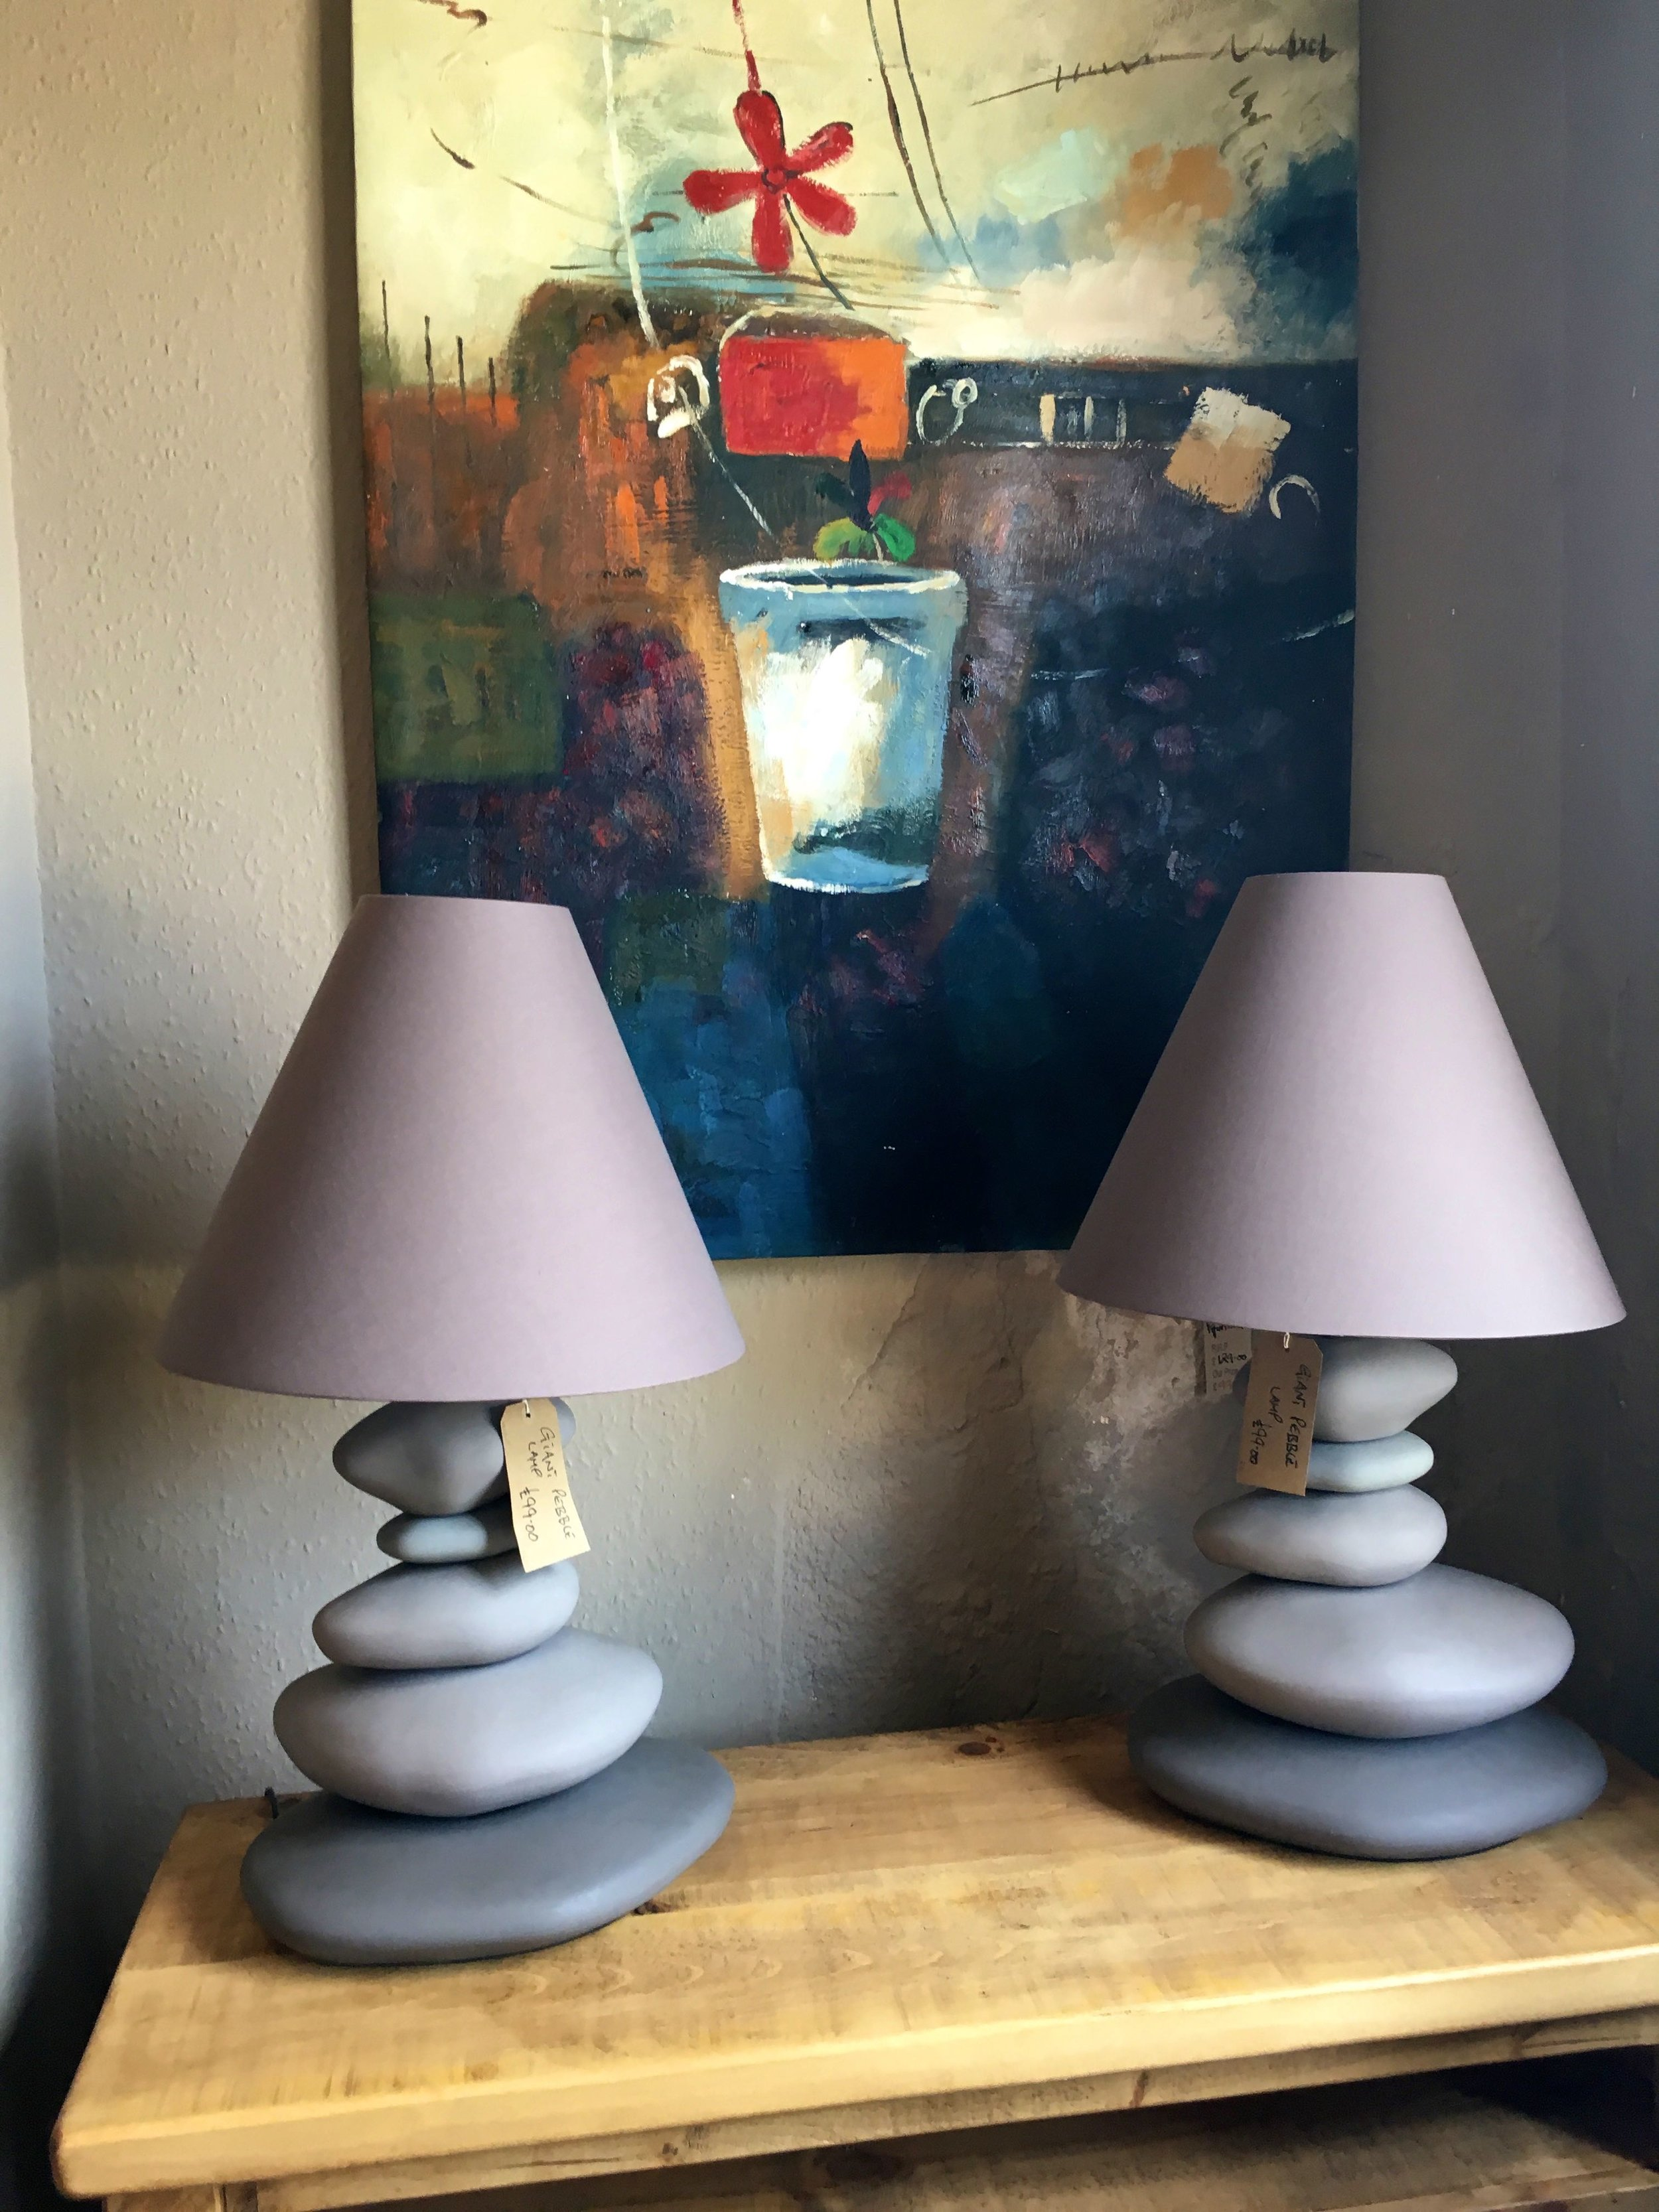 How about these lamp bases?